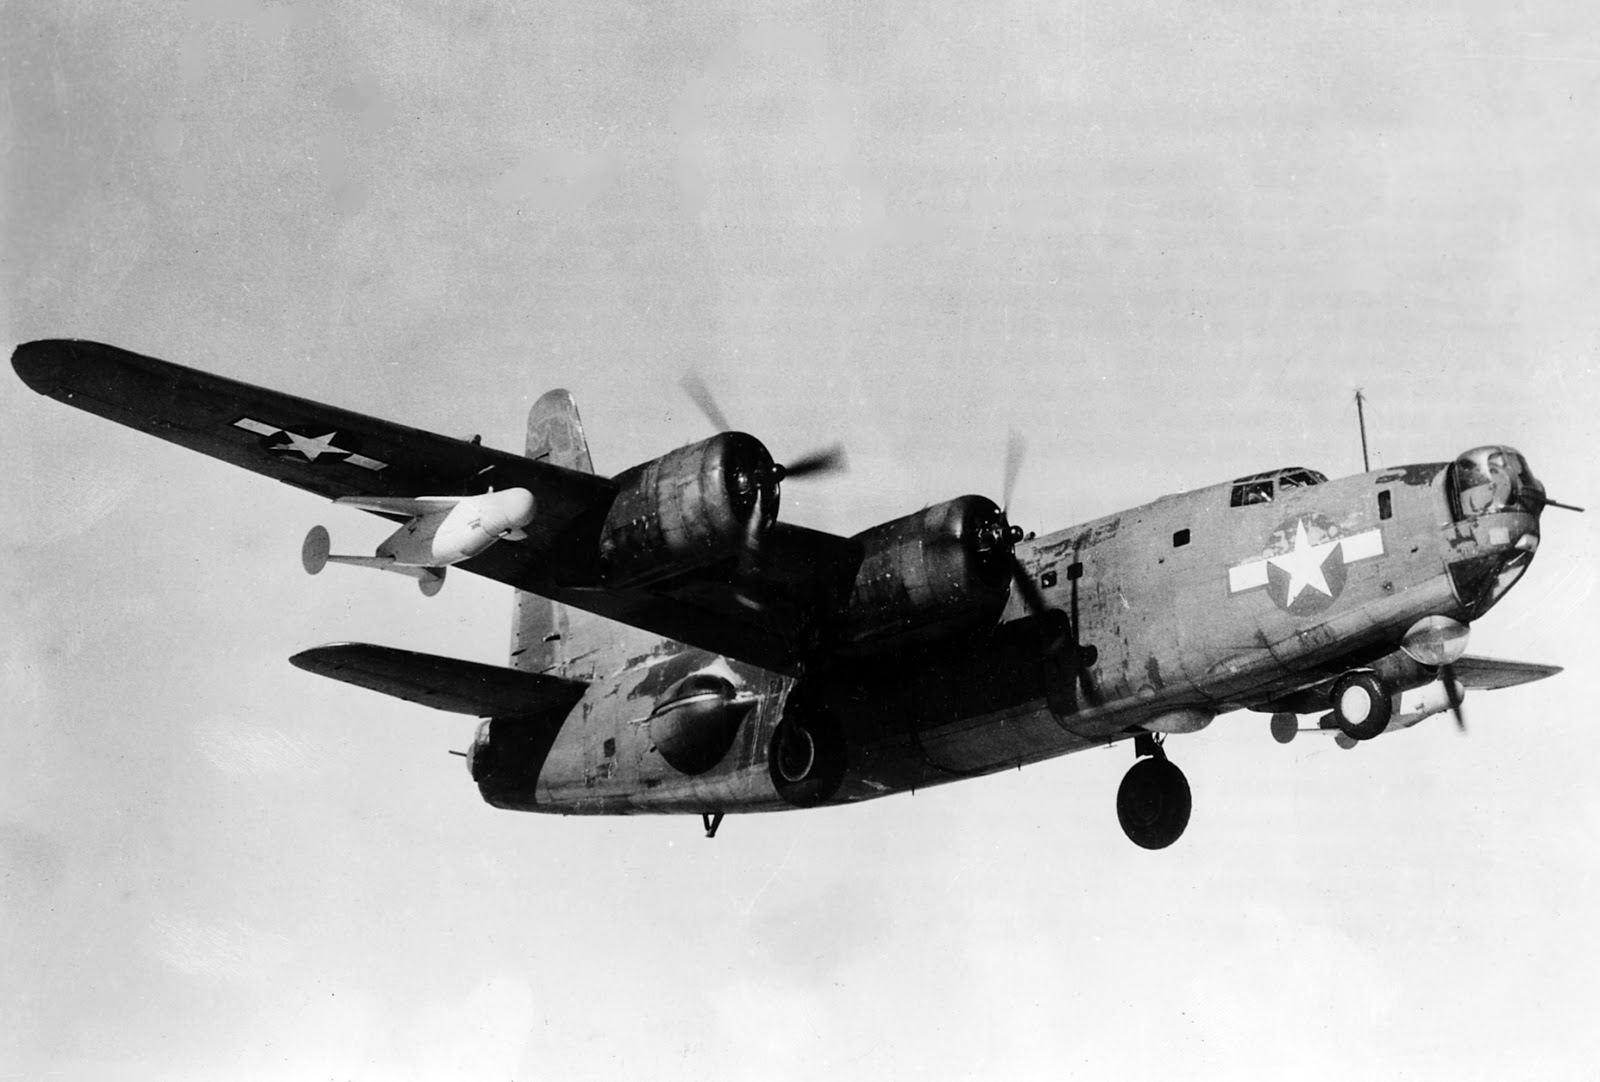 World War II Pictures In Details: US Navy PB4Y-2 Privateer ...